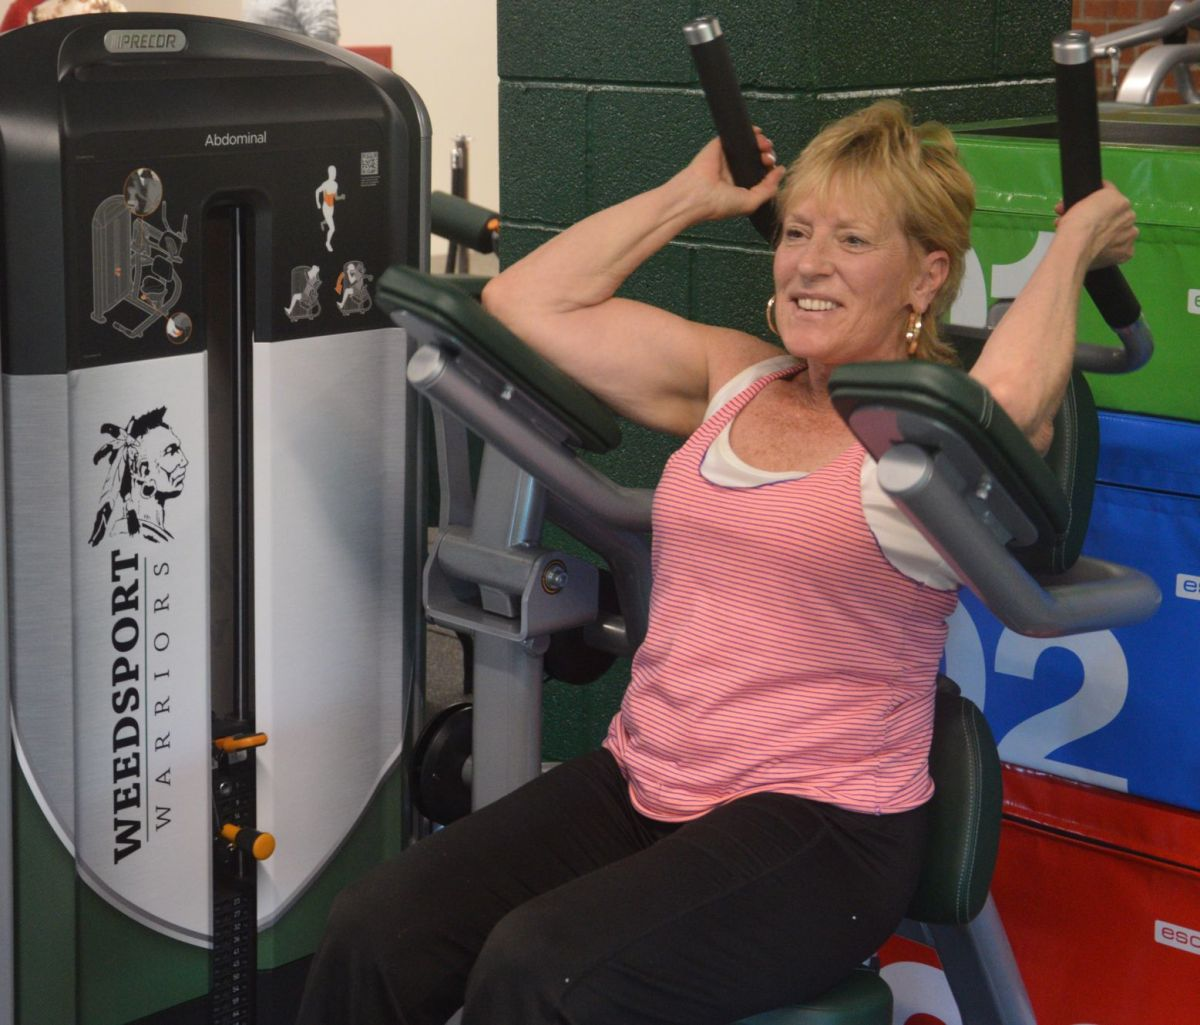 Weedsport school district holds open house for new fitness